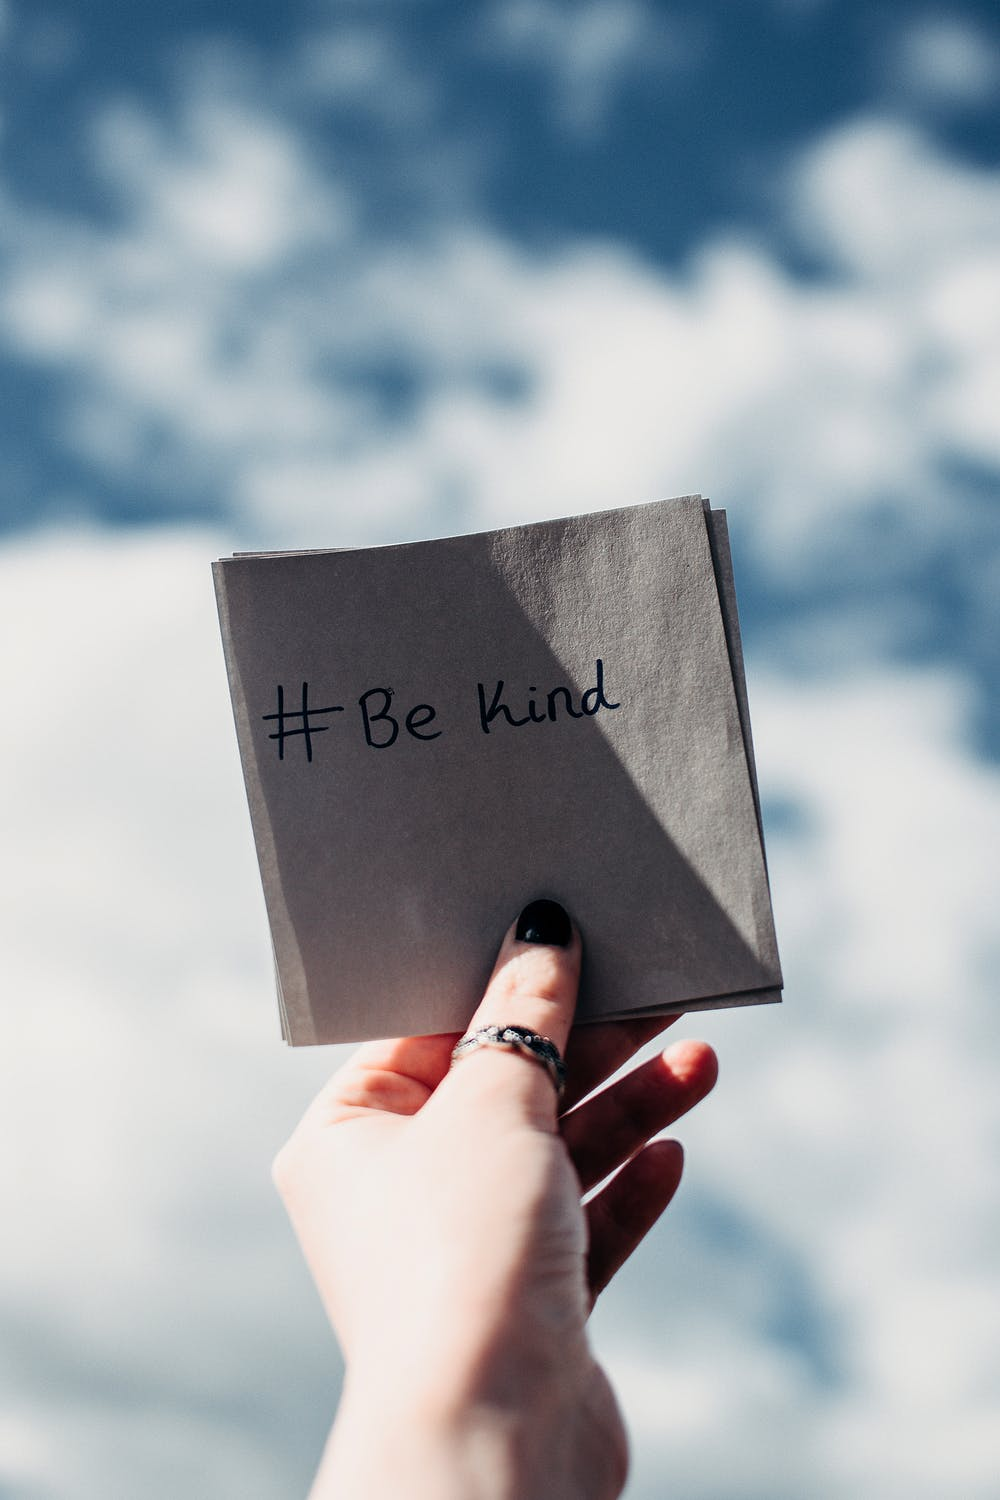 #be kind written on a sticky note